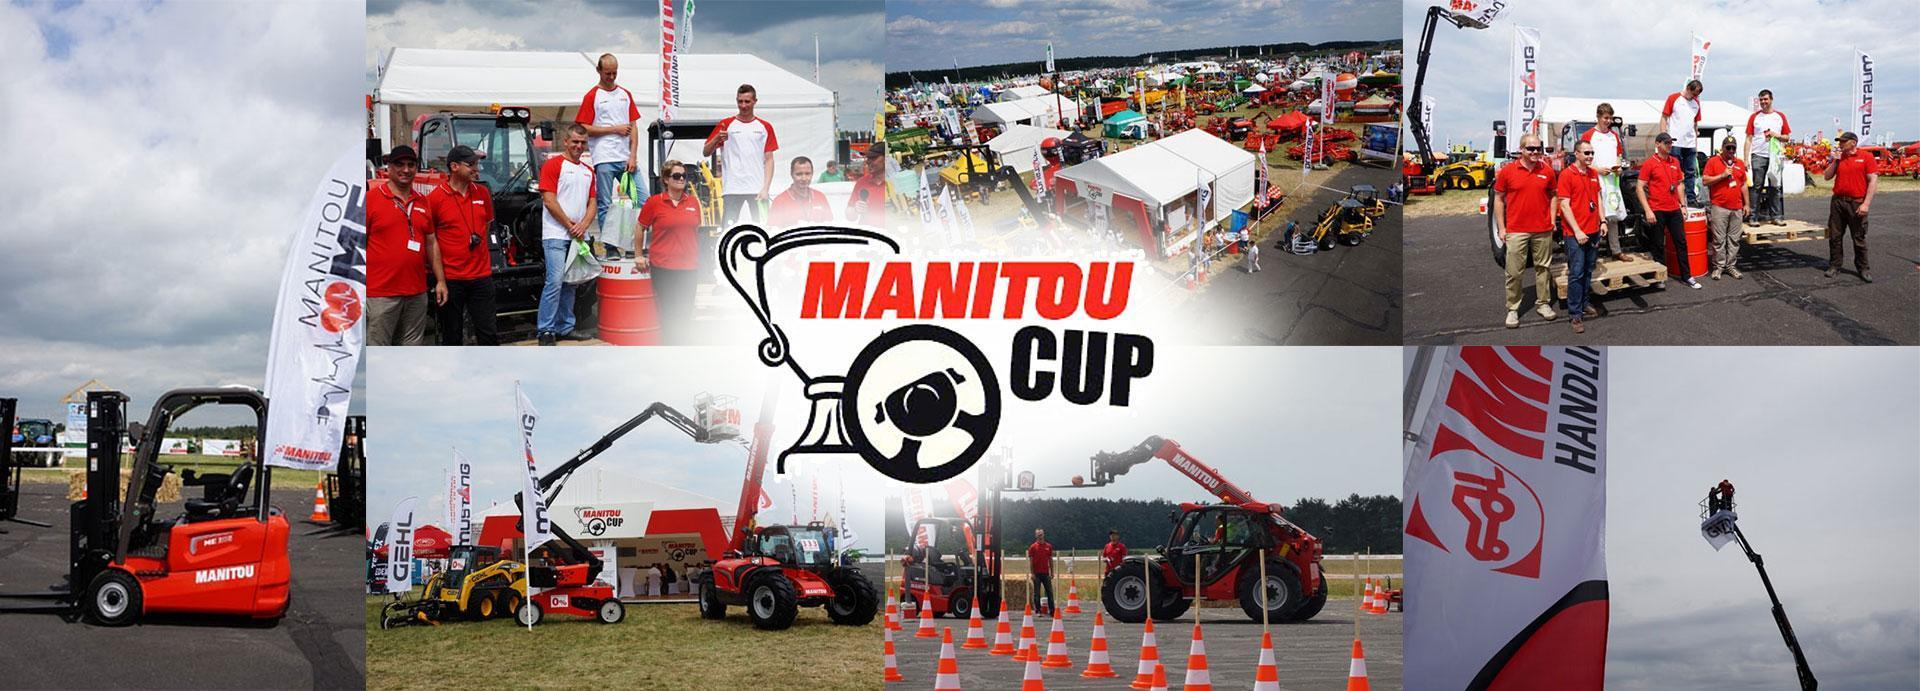 2016-06-20_Manitou_Cup_2016_Cover.jpg